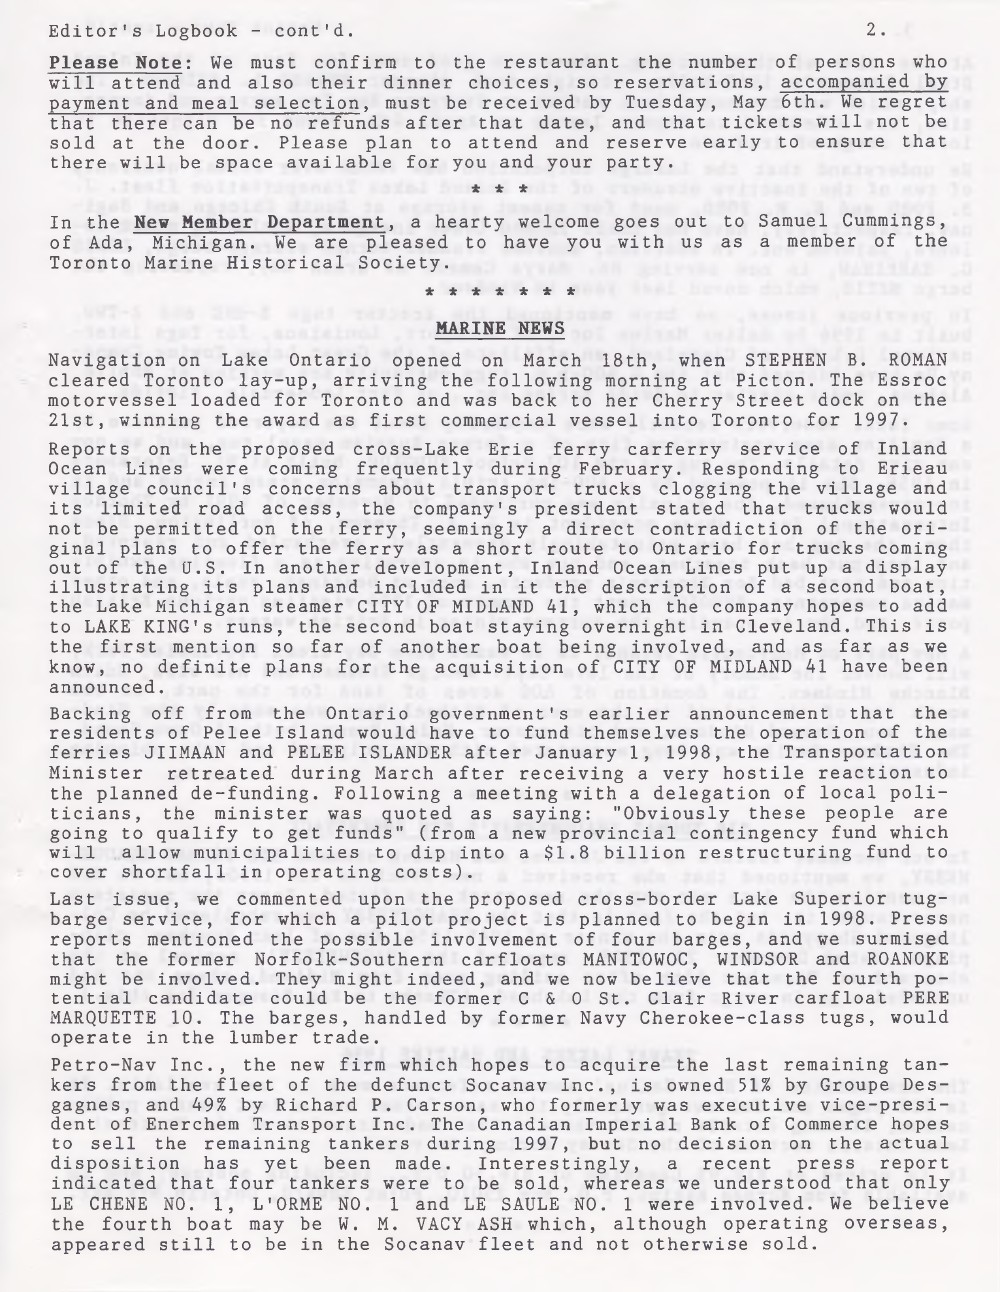 Scanner, v. 29, no. 7 (April 1997)